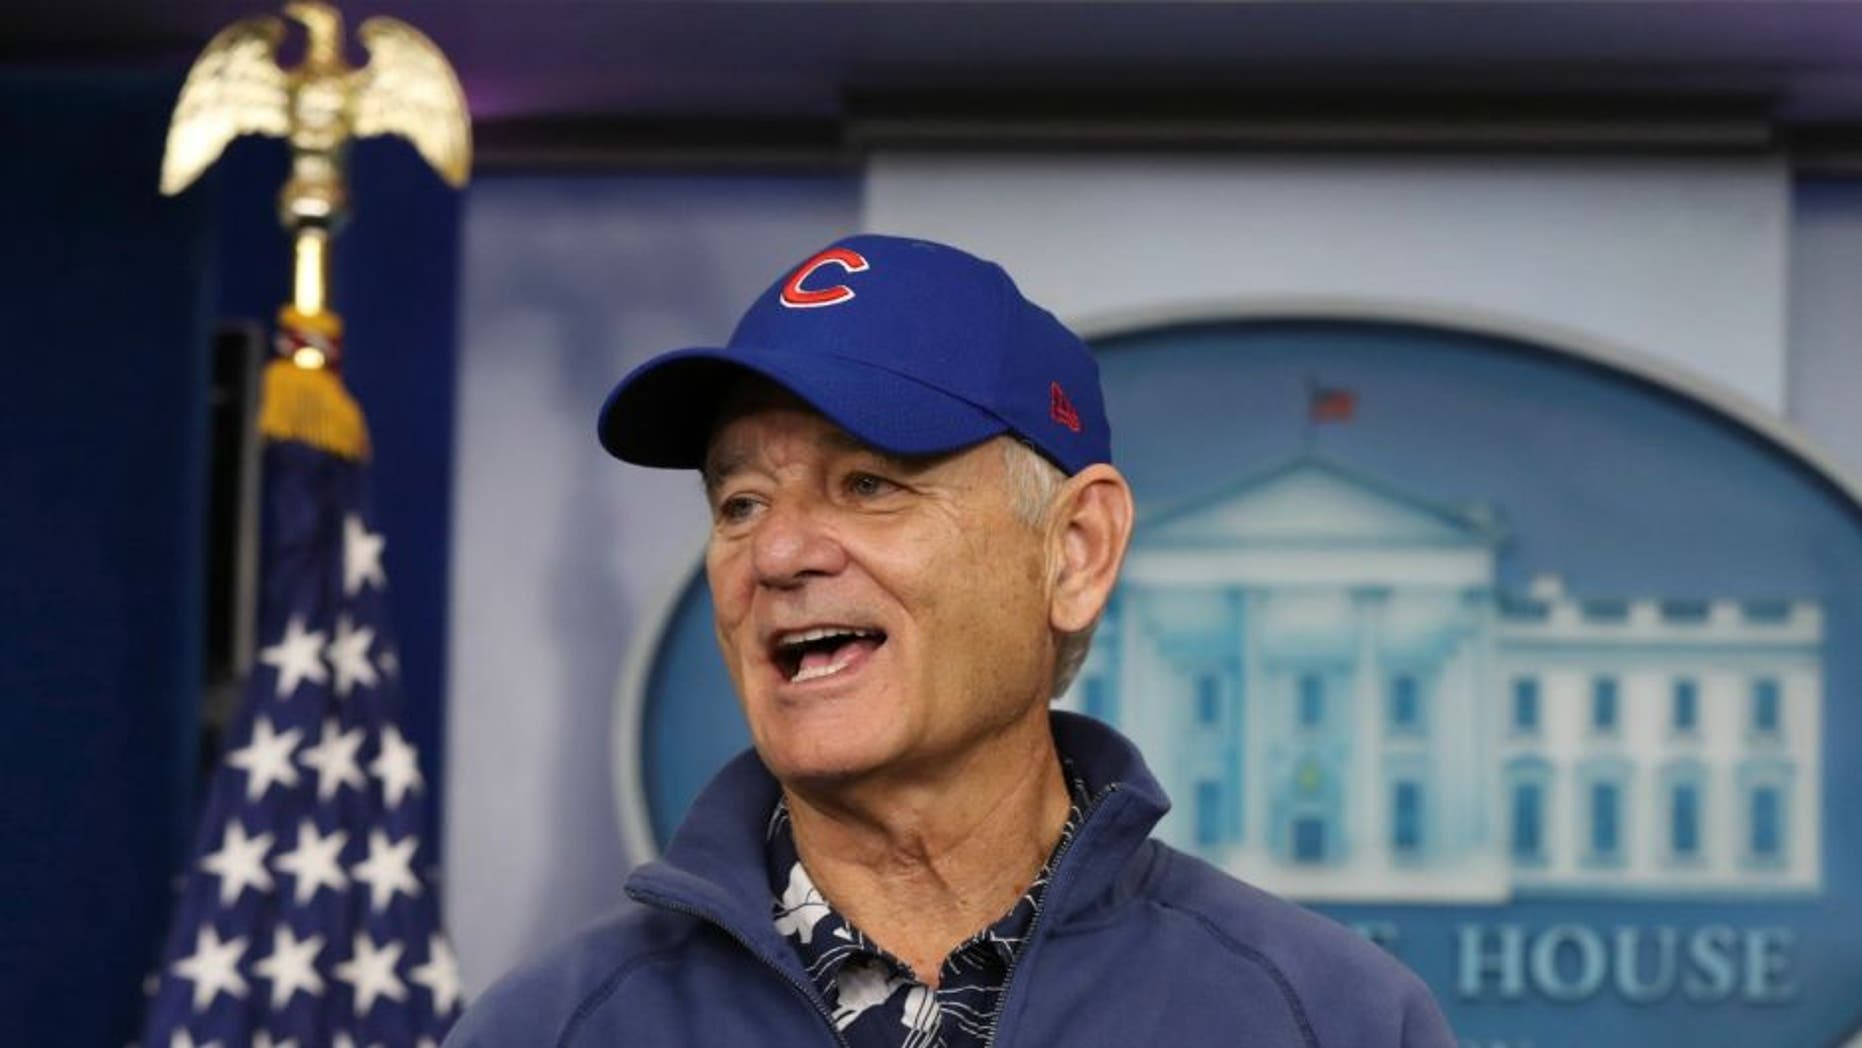 Actor Bill Murray sporting a Chicago Cubs jacket and cap talks during a brief visit in the Brady Press Briefing Room of the White House in Washington, Friday, Oct. 21, 2016. Murray is in Washington to receive the Mark Twain Prize for American Humor. (AP Photo/Manuel Balce Ceneta)